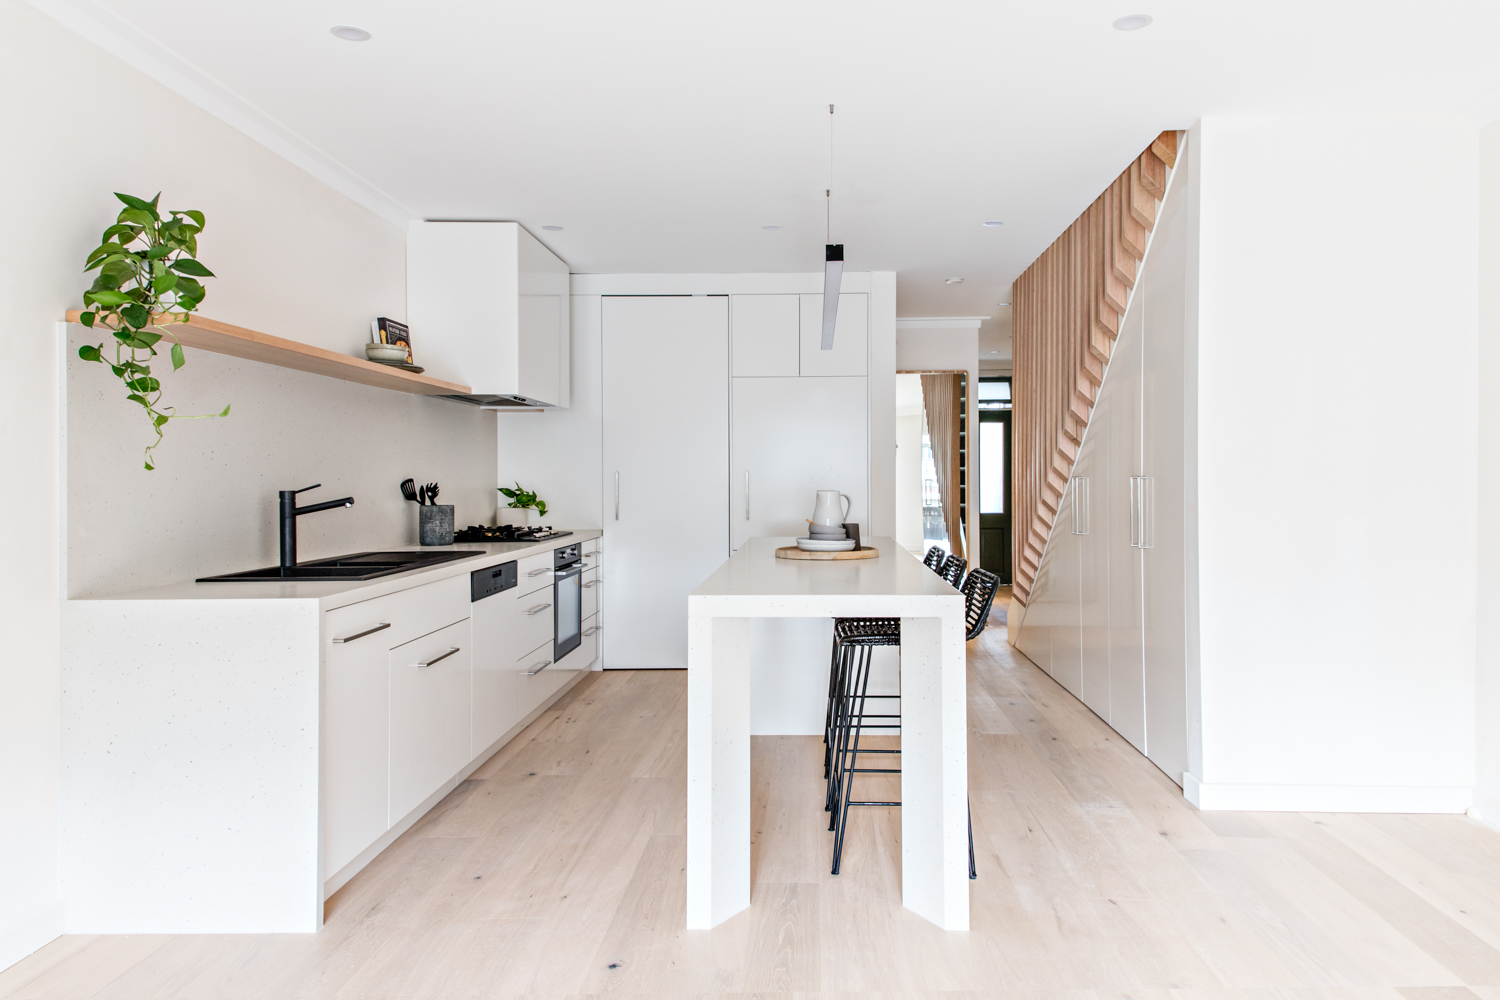 seven-seat-house-kitty-lee-architecture-the-design-emotive-01.jpg